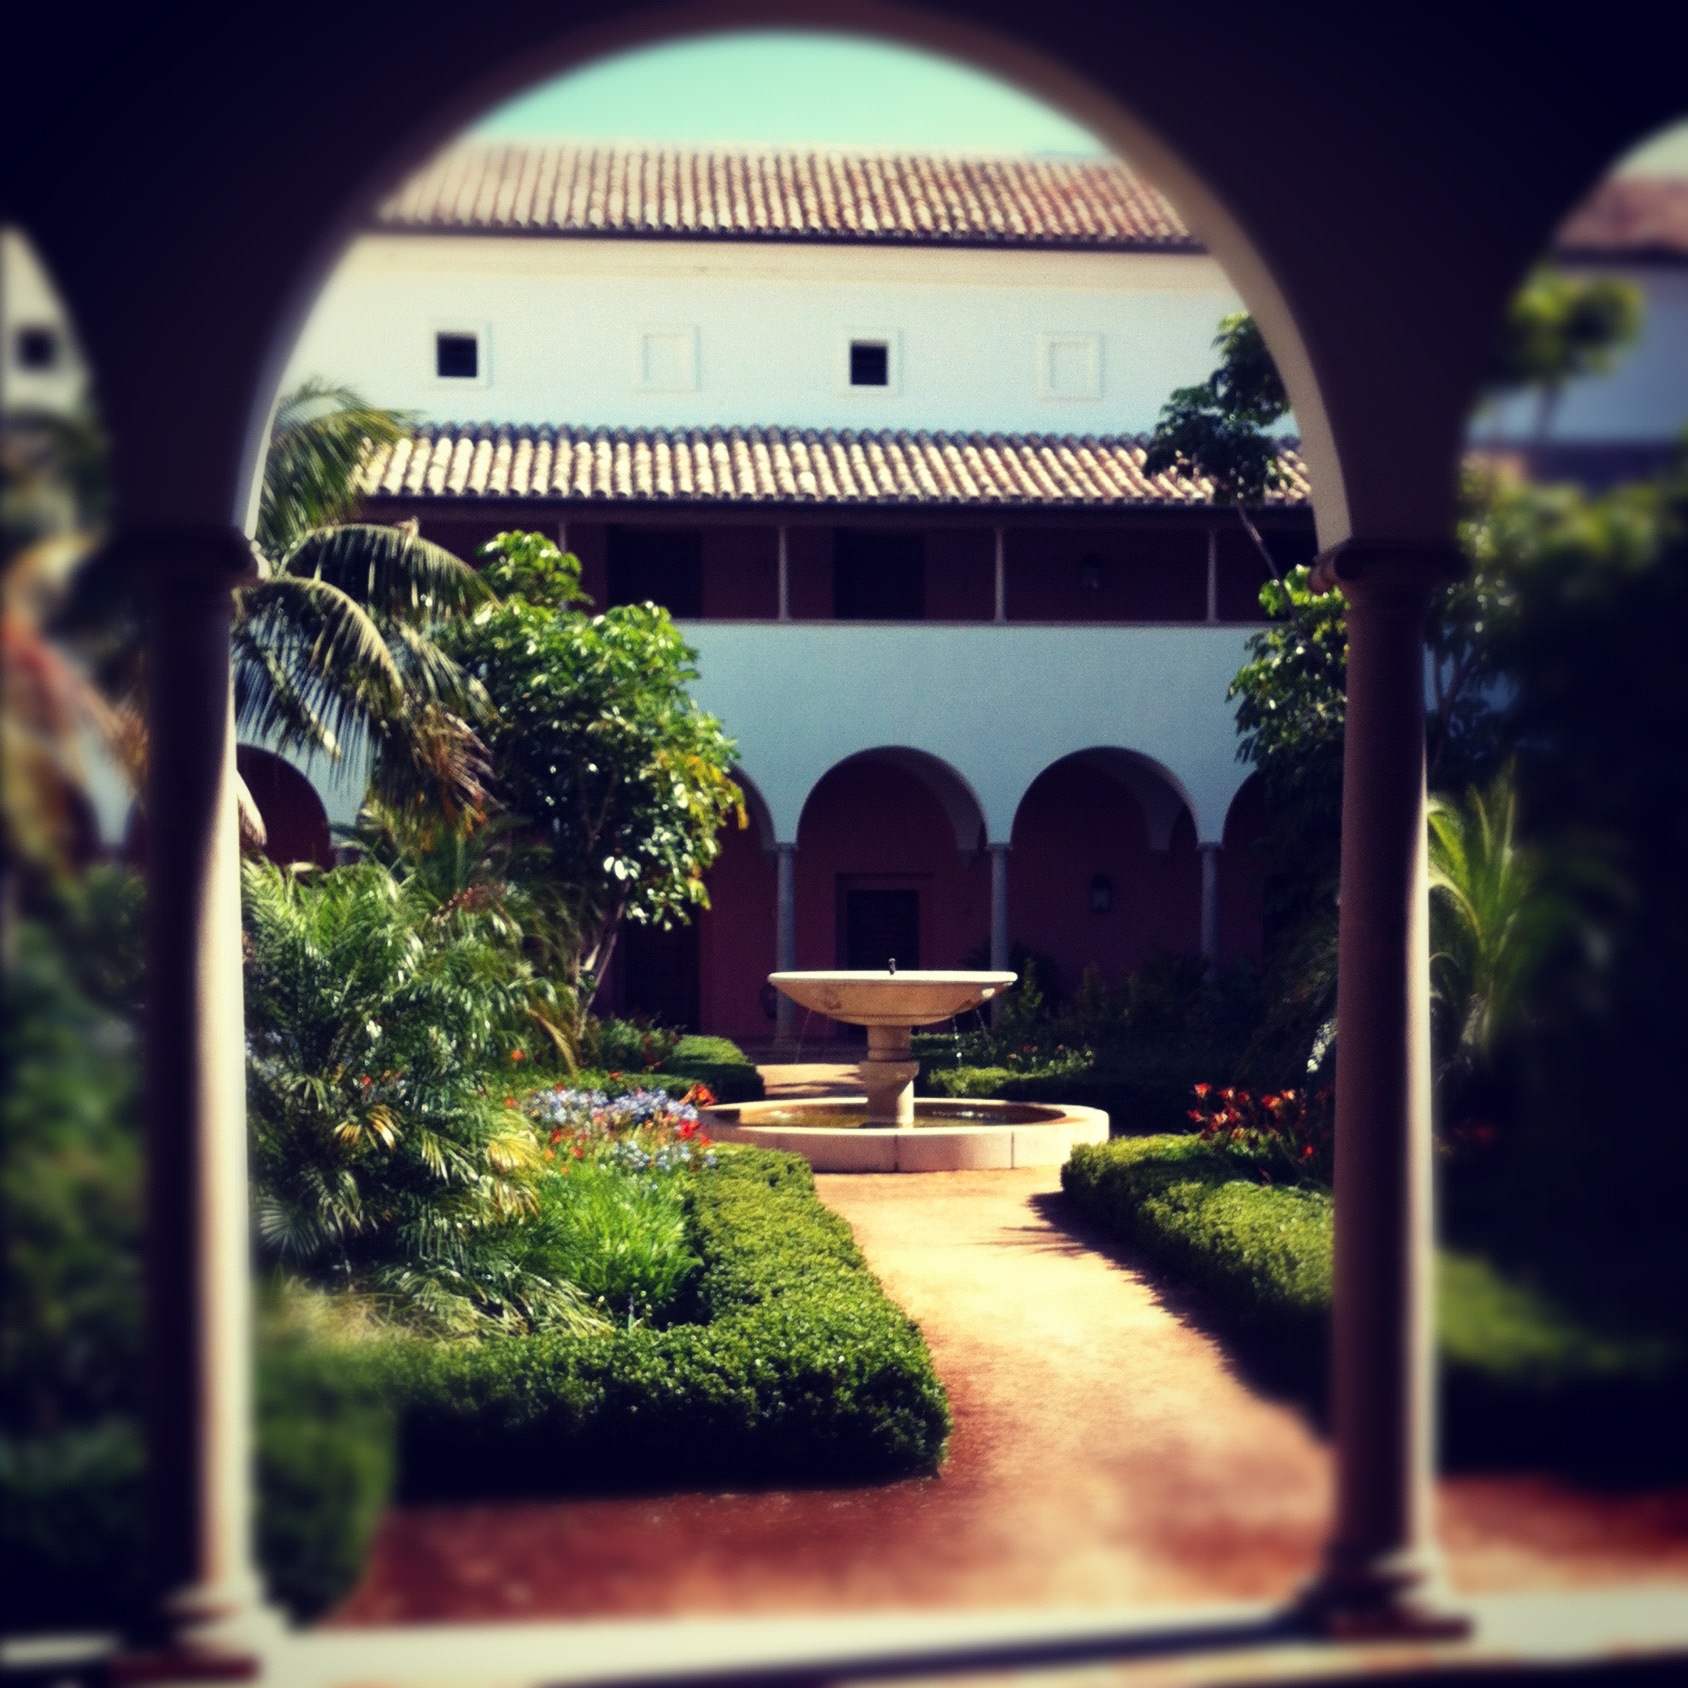 The Courtyard at Finca Cortesin